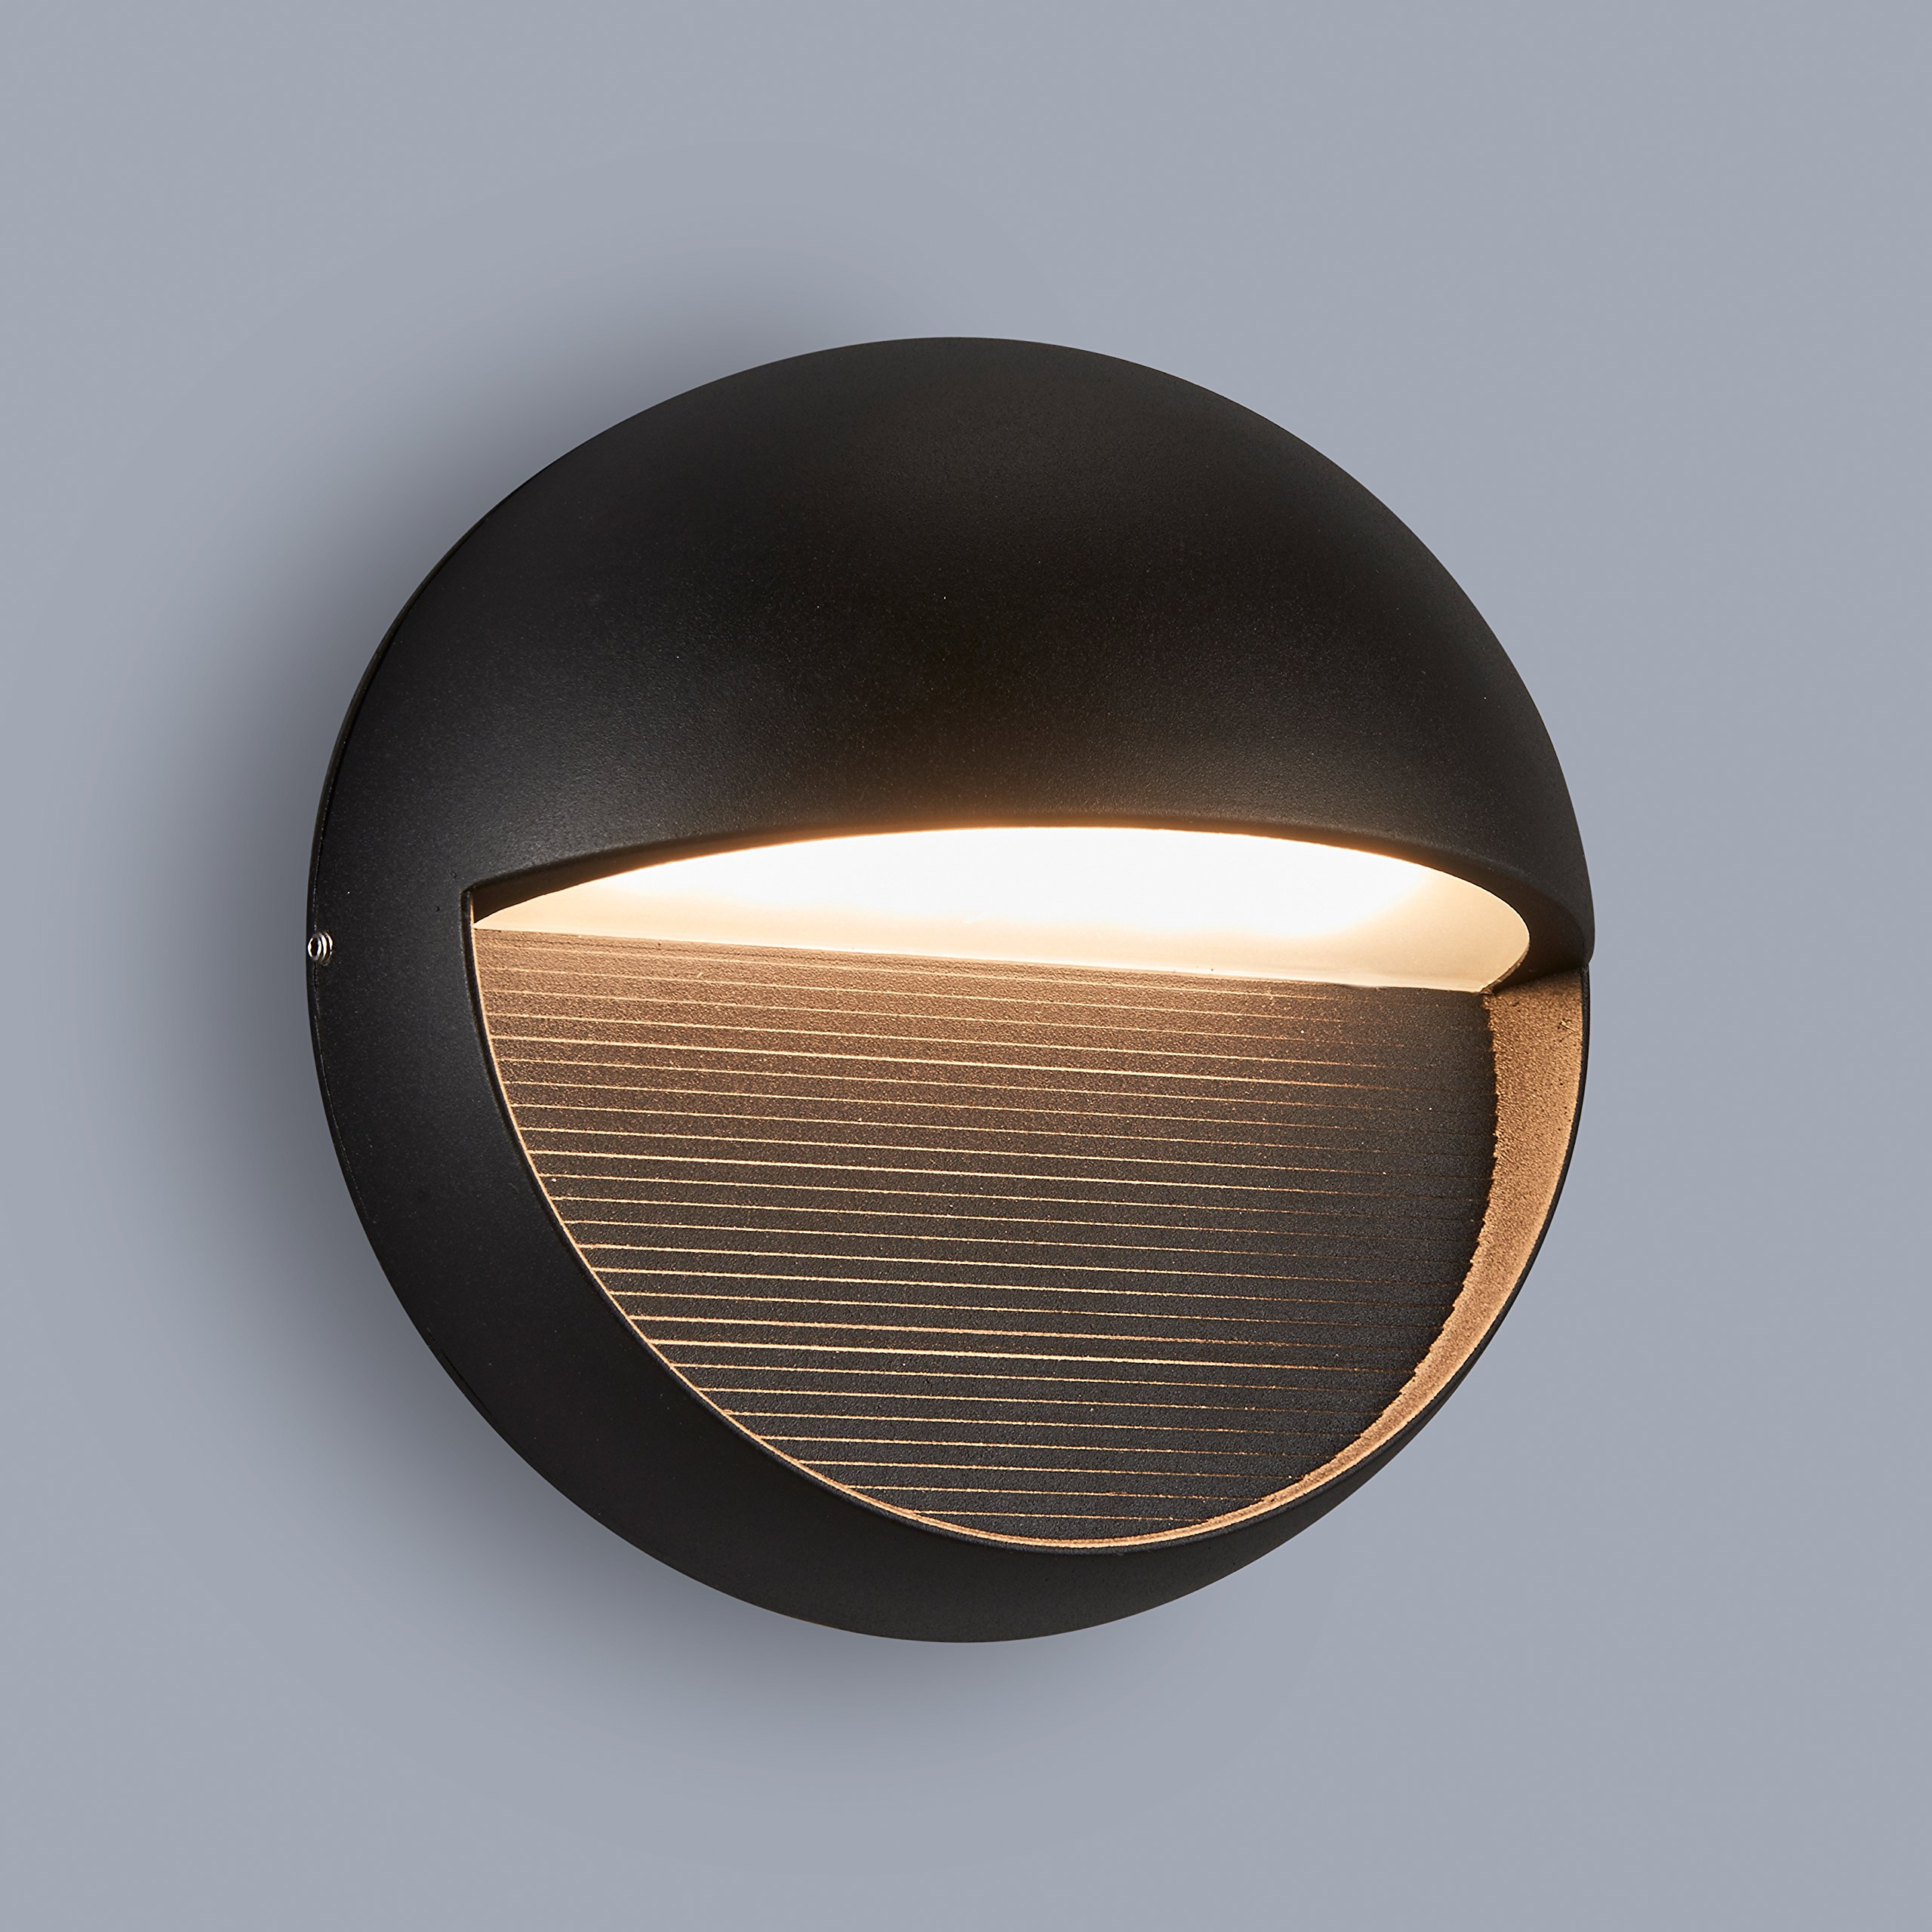 MICSIU LED Aluminum Wall Mount Light Outdoor Indoor Wall Sconce, ADA Compliant. UL Listed. Textured Black (Round Wall Light)